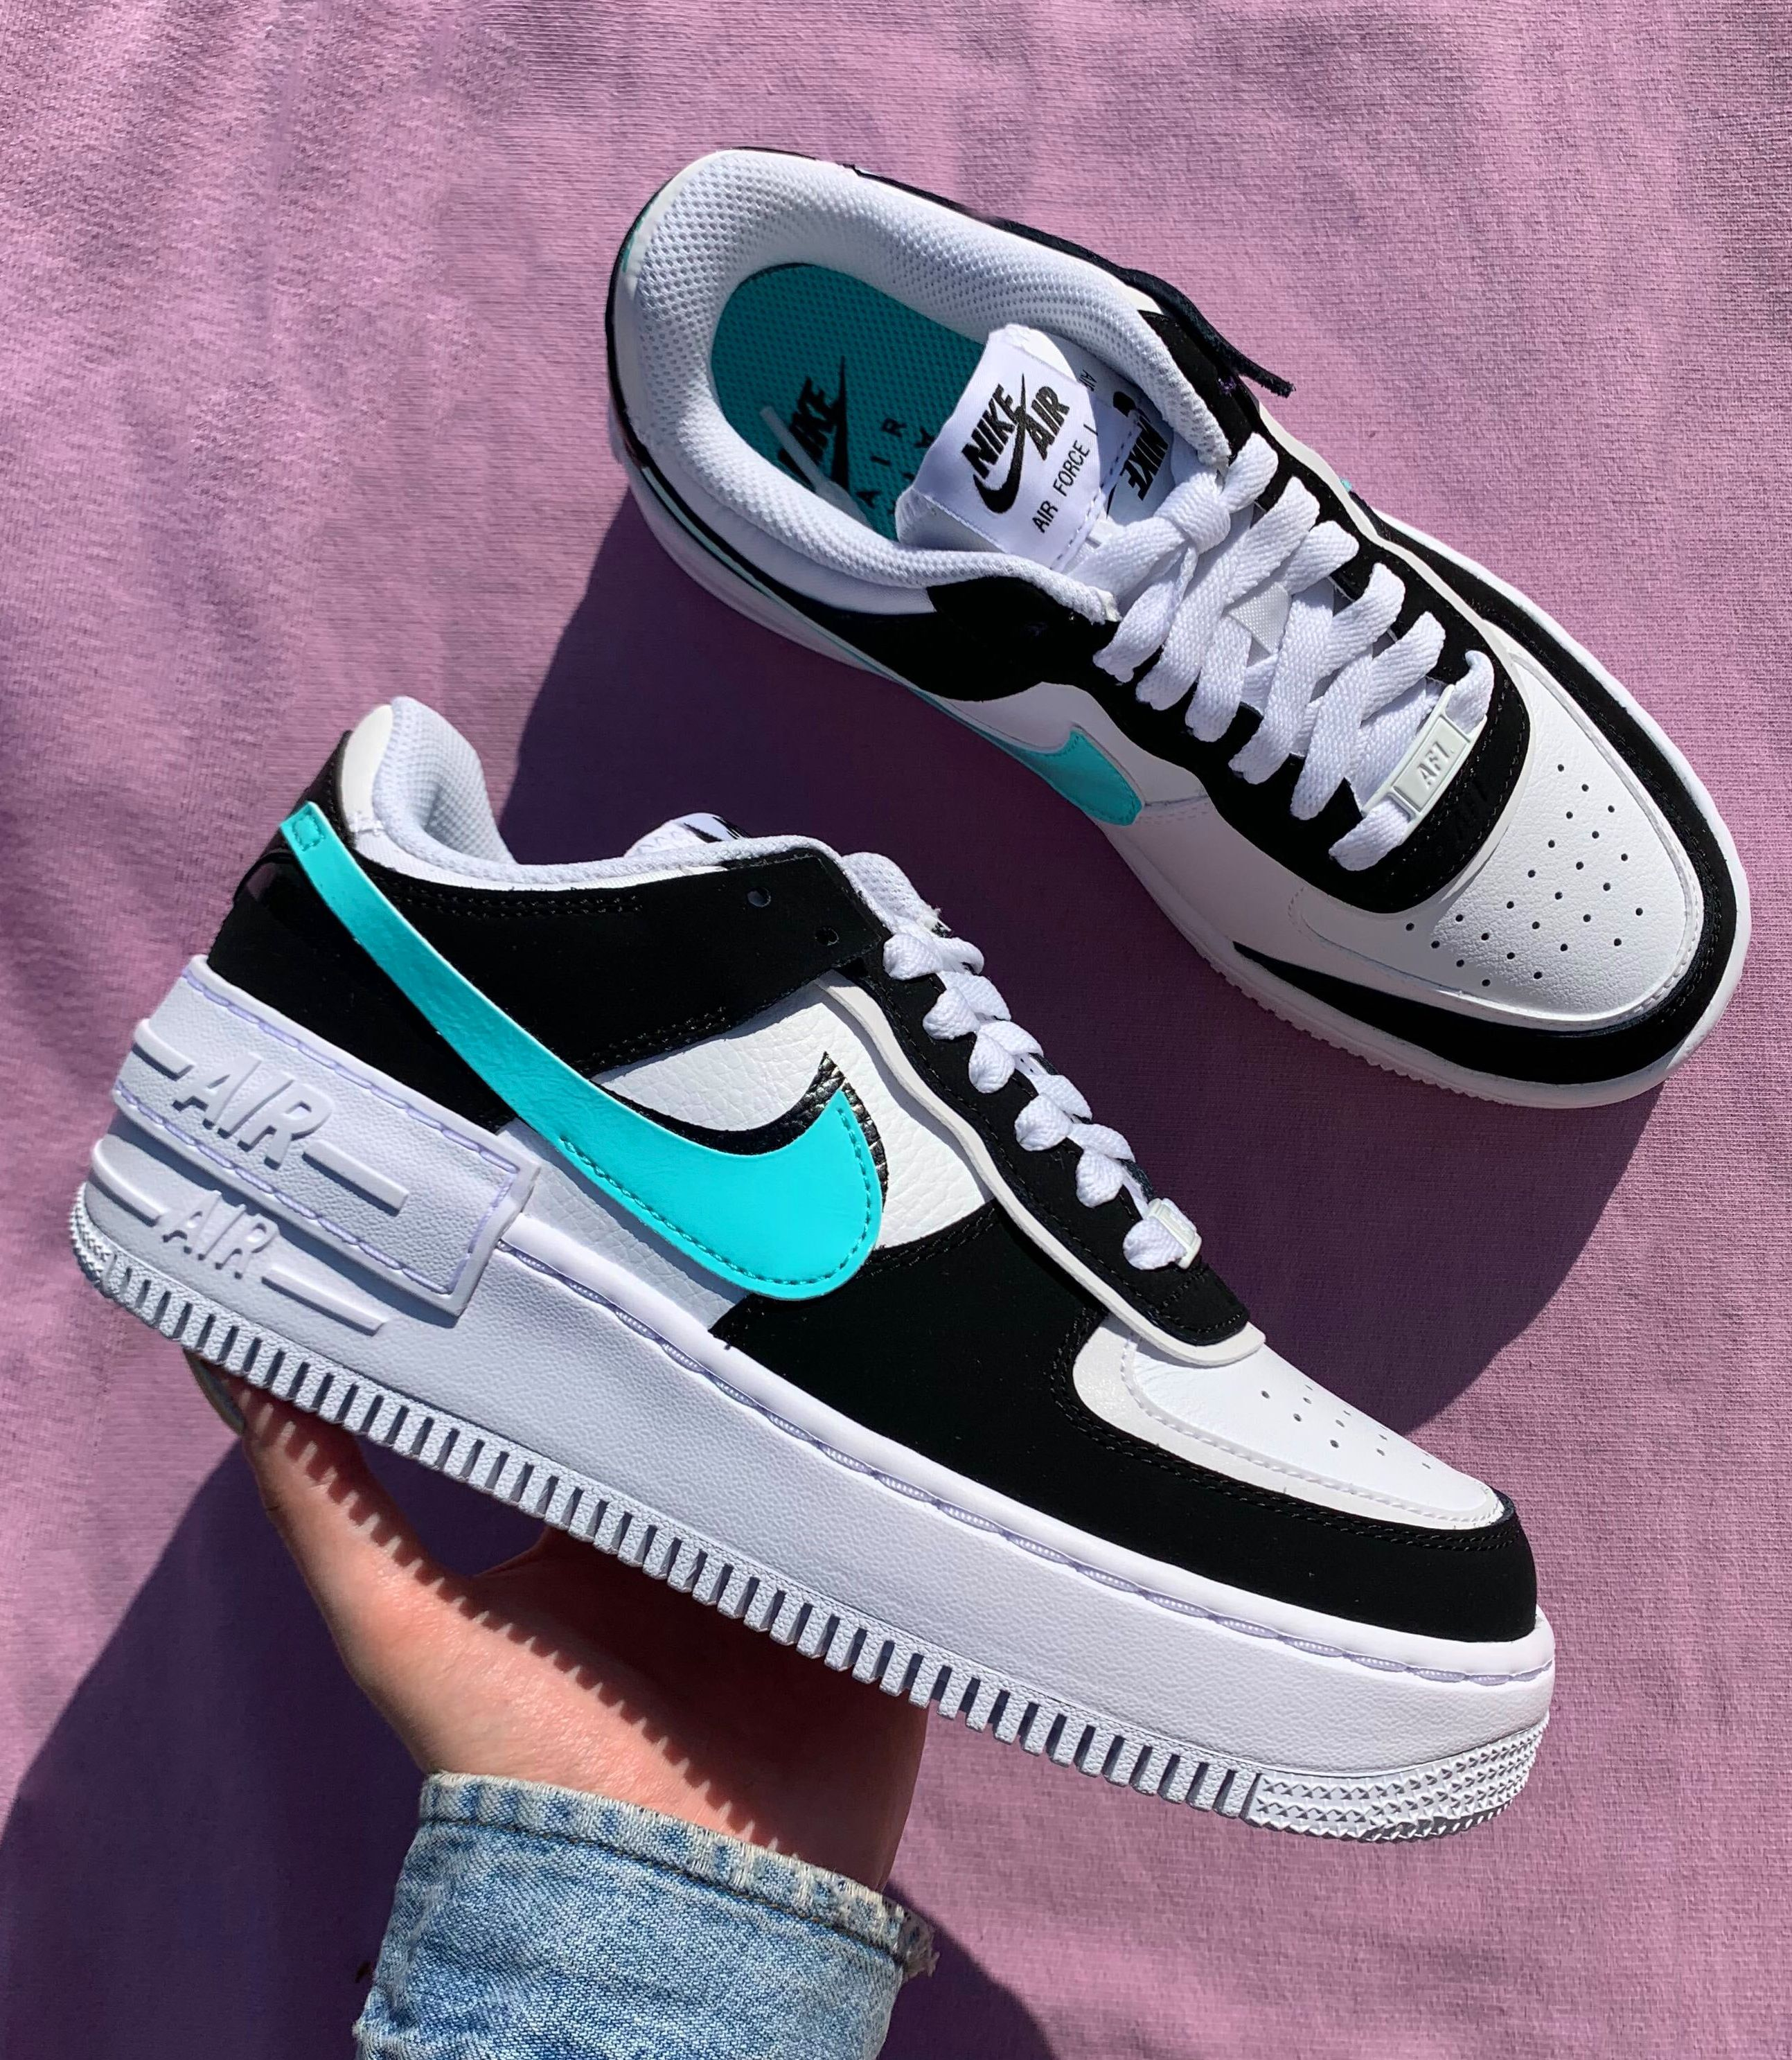 Nike Air Force 1 Shadow White Black Cz7929 100 The Sole Womens In 2020 Nike Air Shoes Custom Nike Shoes Sneakers Fashion Женские nike air force 1 shadow with orange accents. nike air force 1 shadow white black